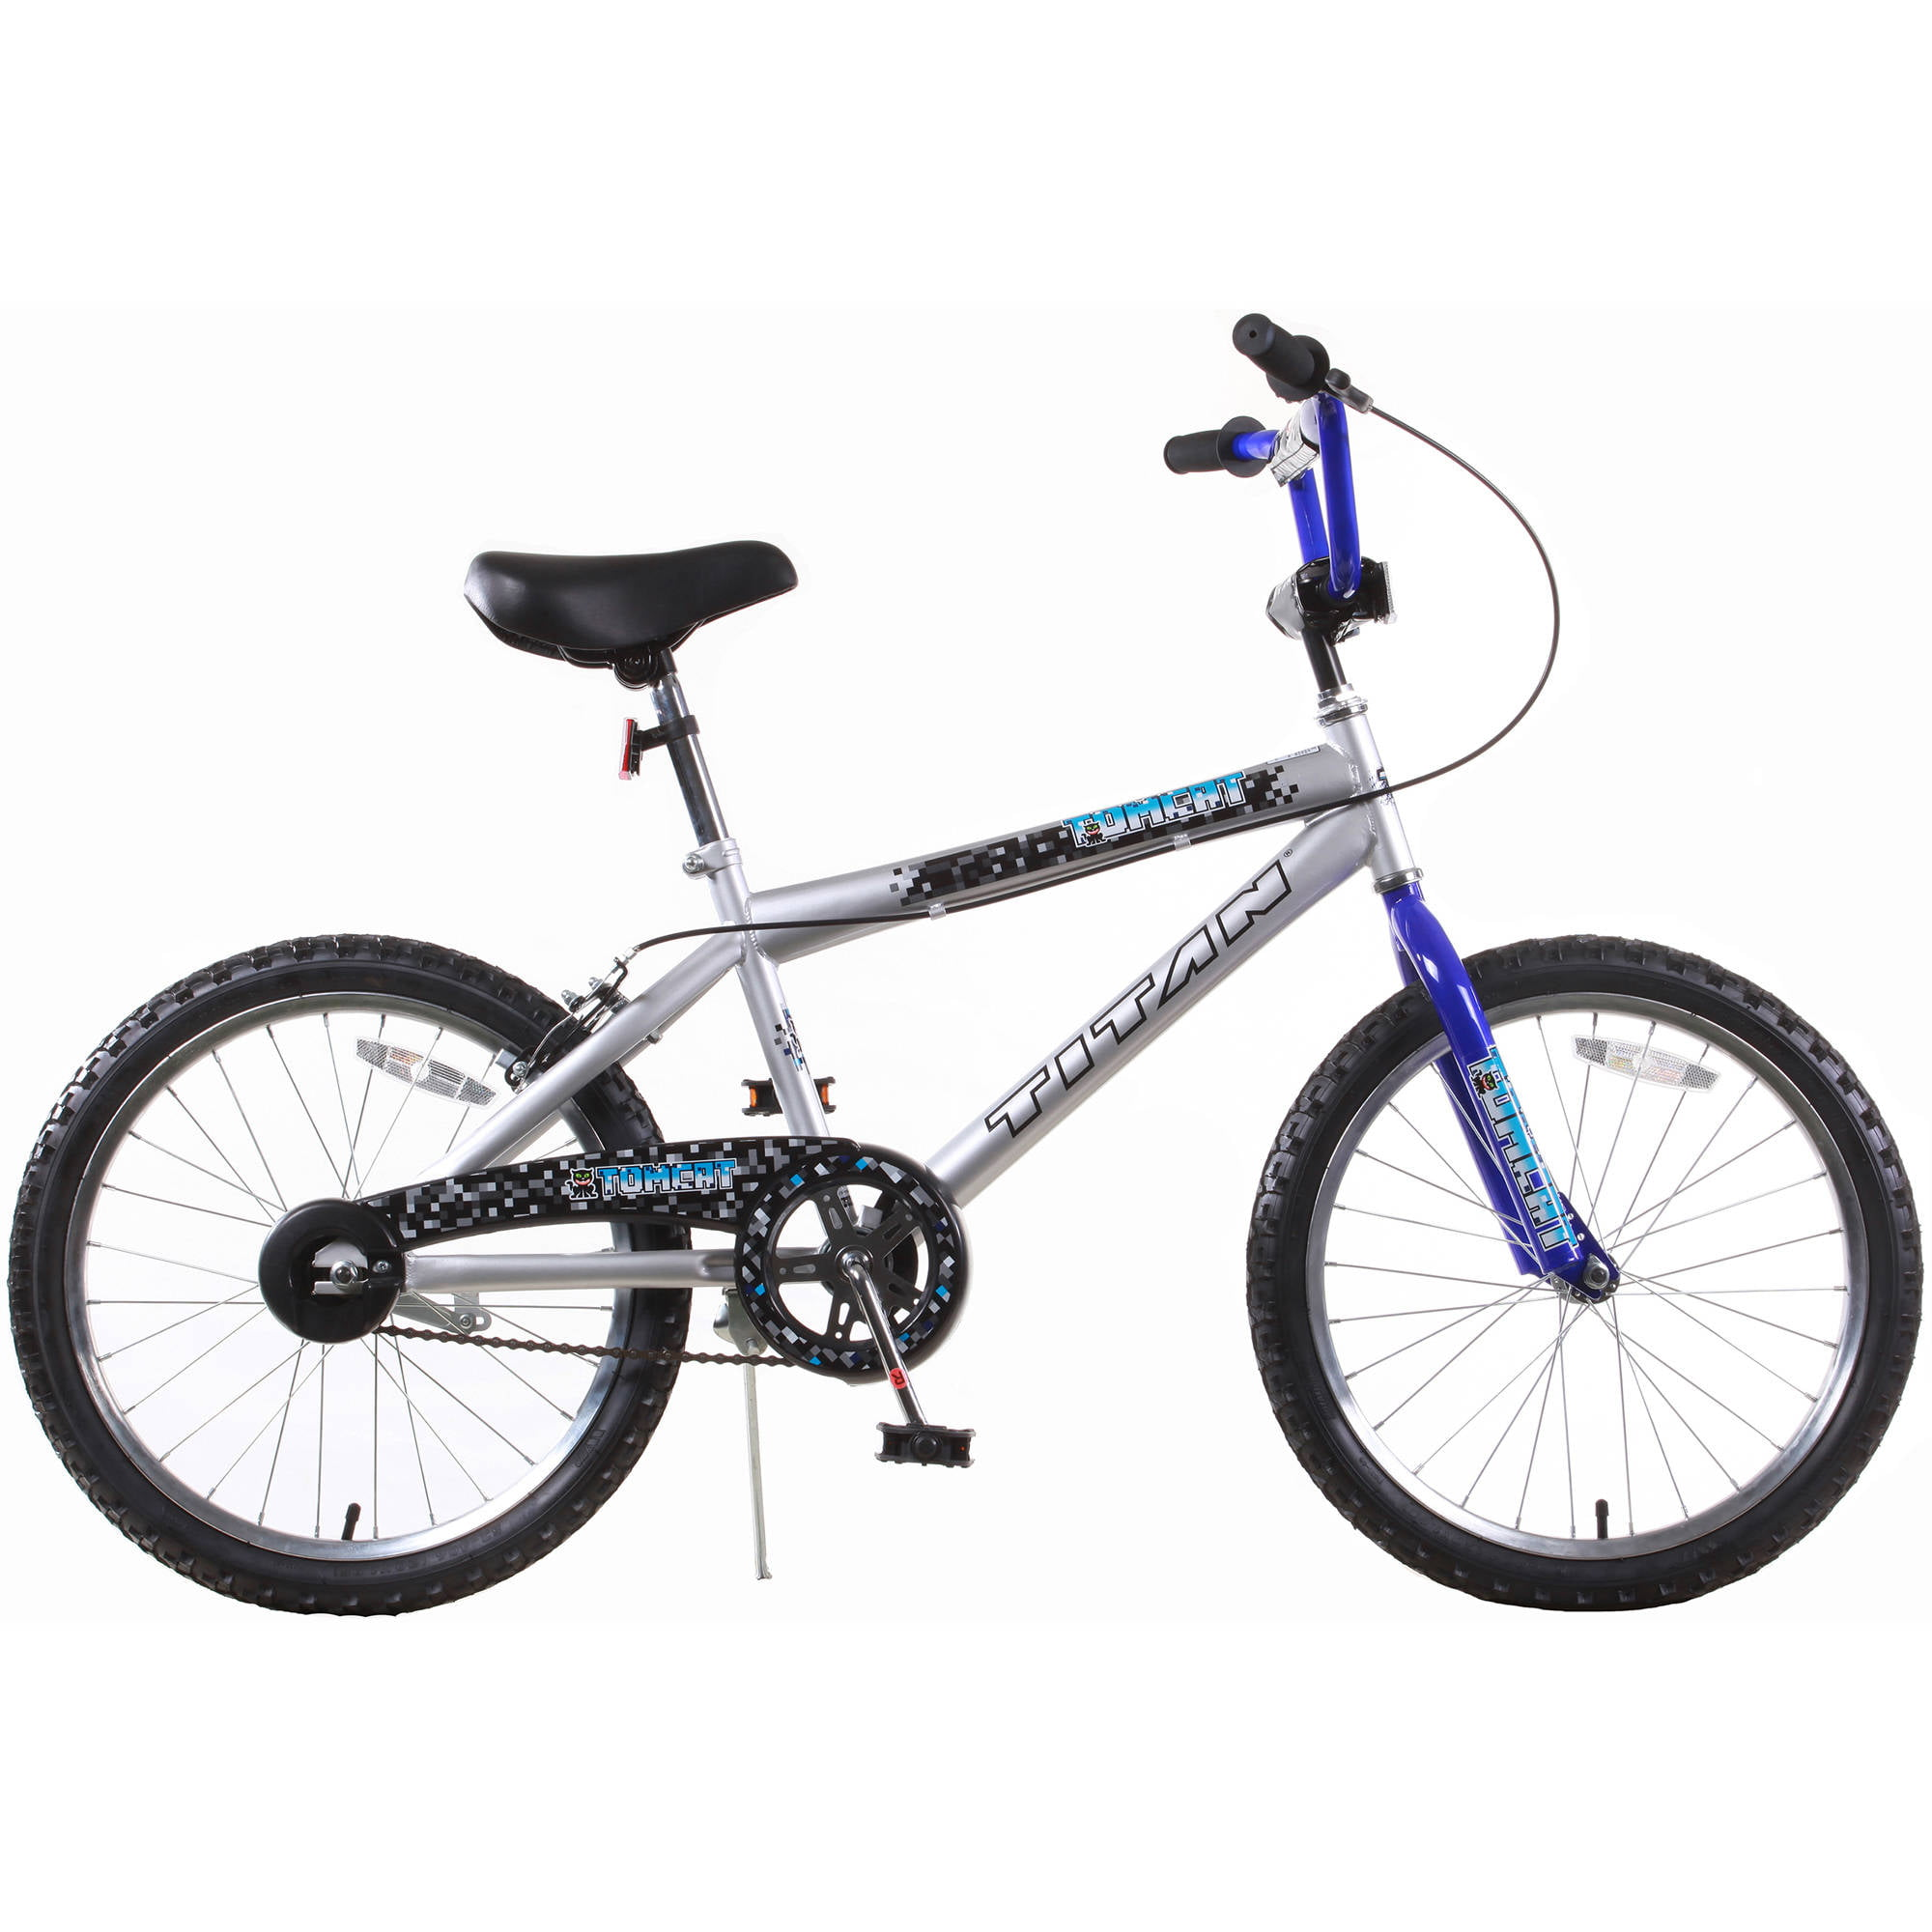 "TITAN Tomcat Boys BMX Bike with 20"" Wheels, Blue and Silver by Titan"